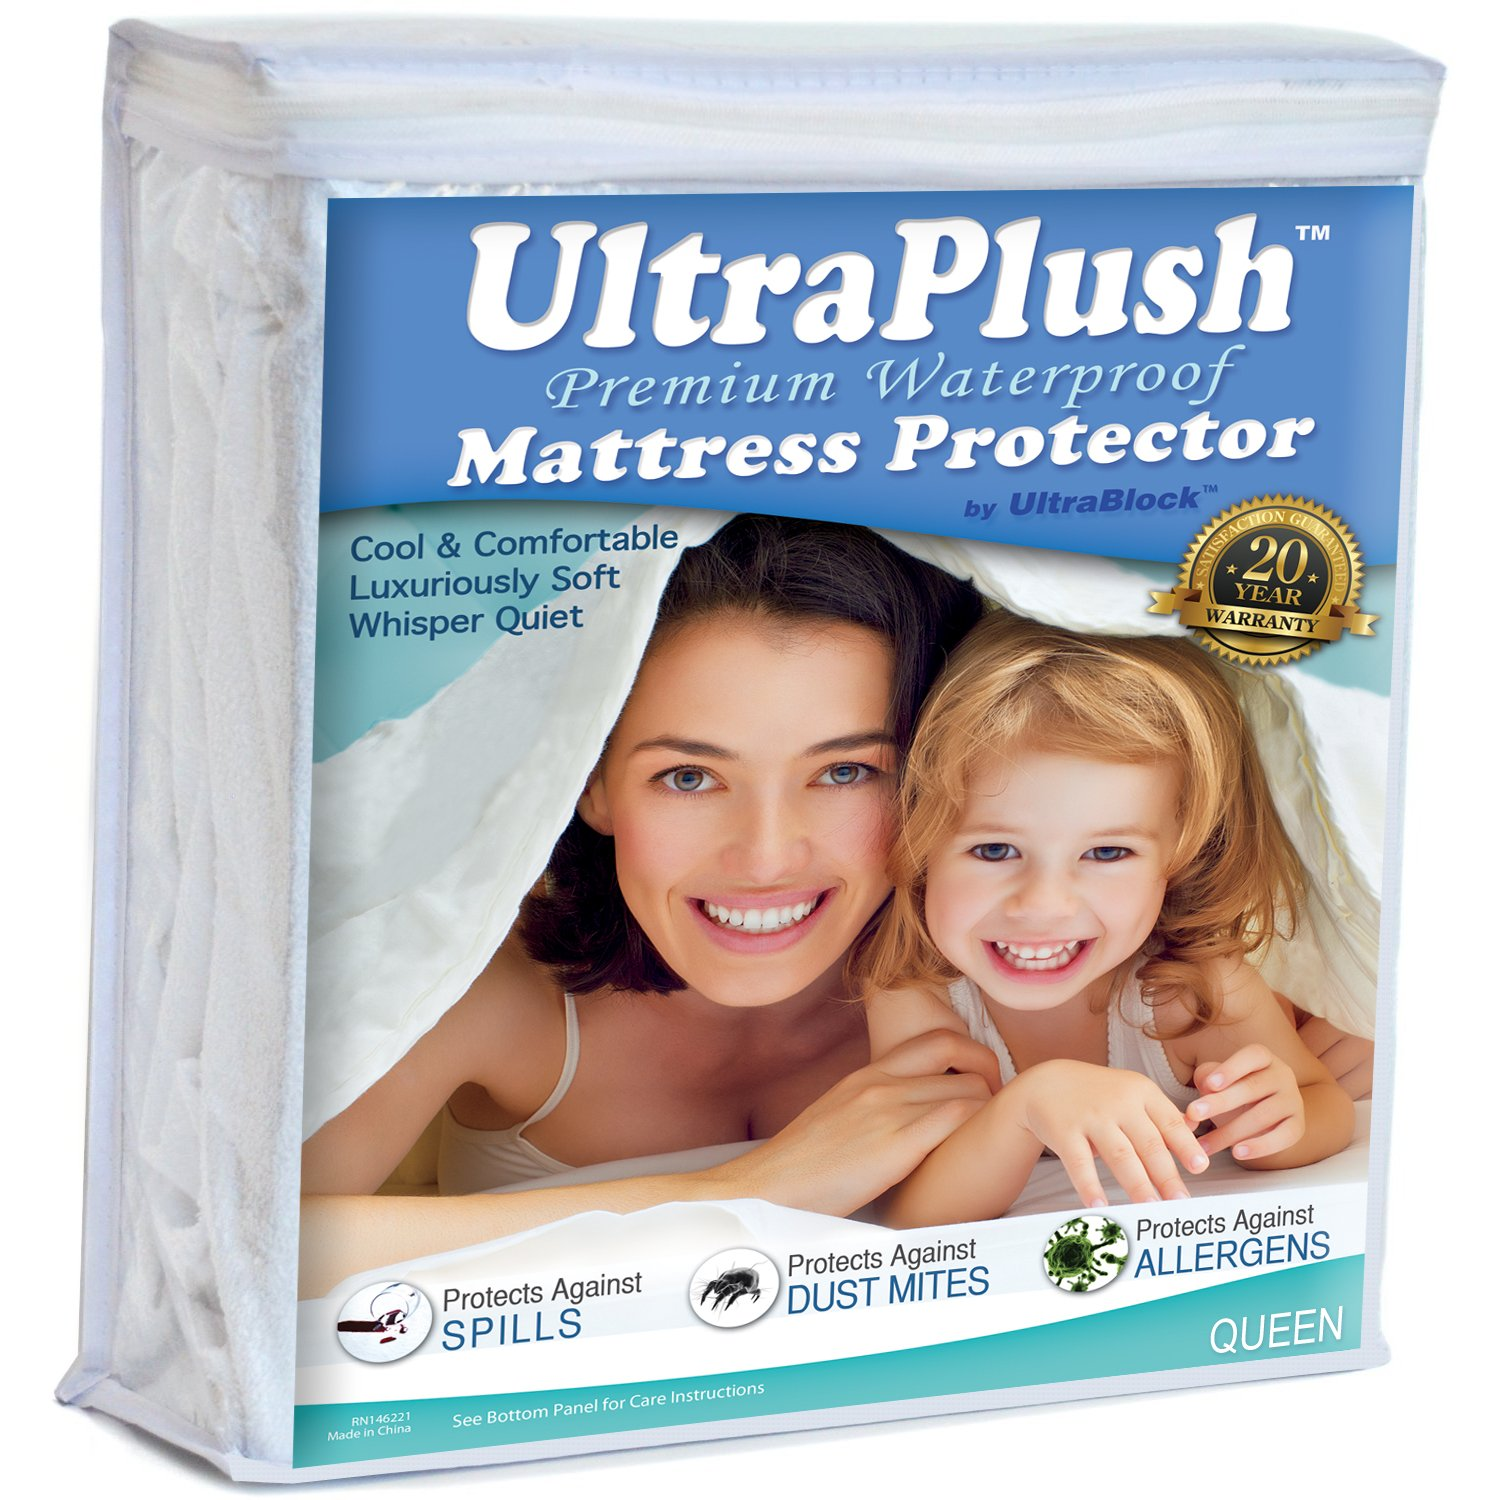 Ultra Plush 100% Waterproof Mattress Protector, Luxuriously Soft and Comfortable, Protects Against Dust Mites and Allergens, Stretchable Deep Pocket Ensures Snug, Easy Fit (Queen Size) by UltraBlock